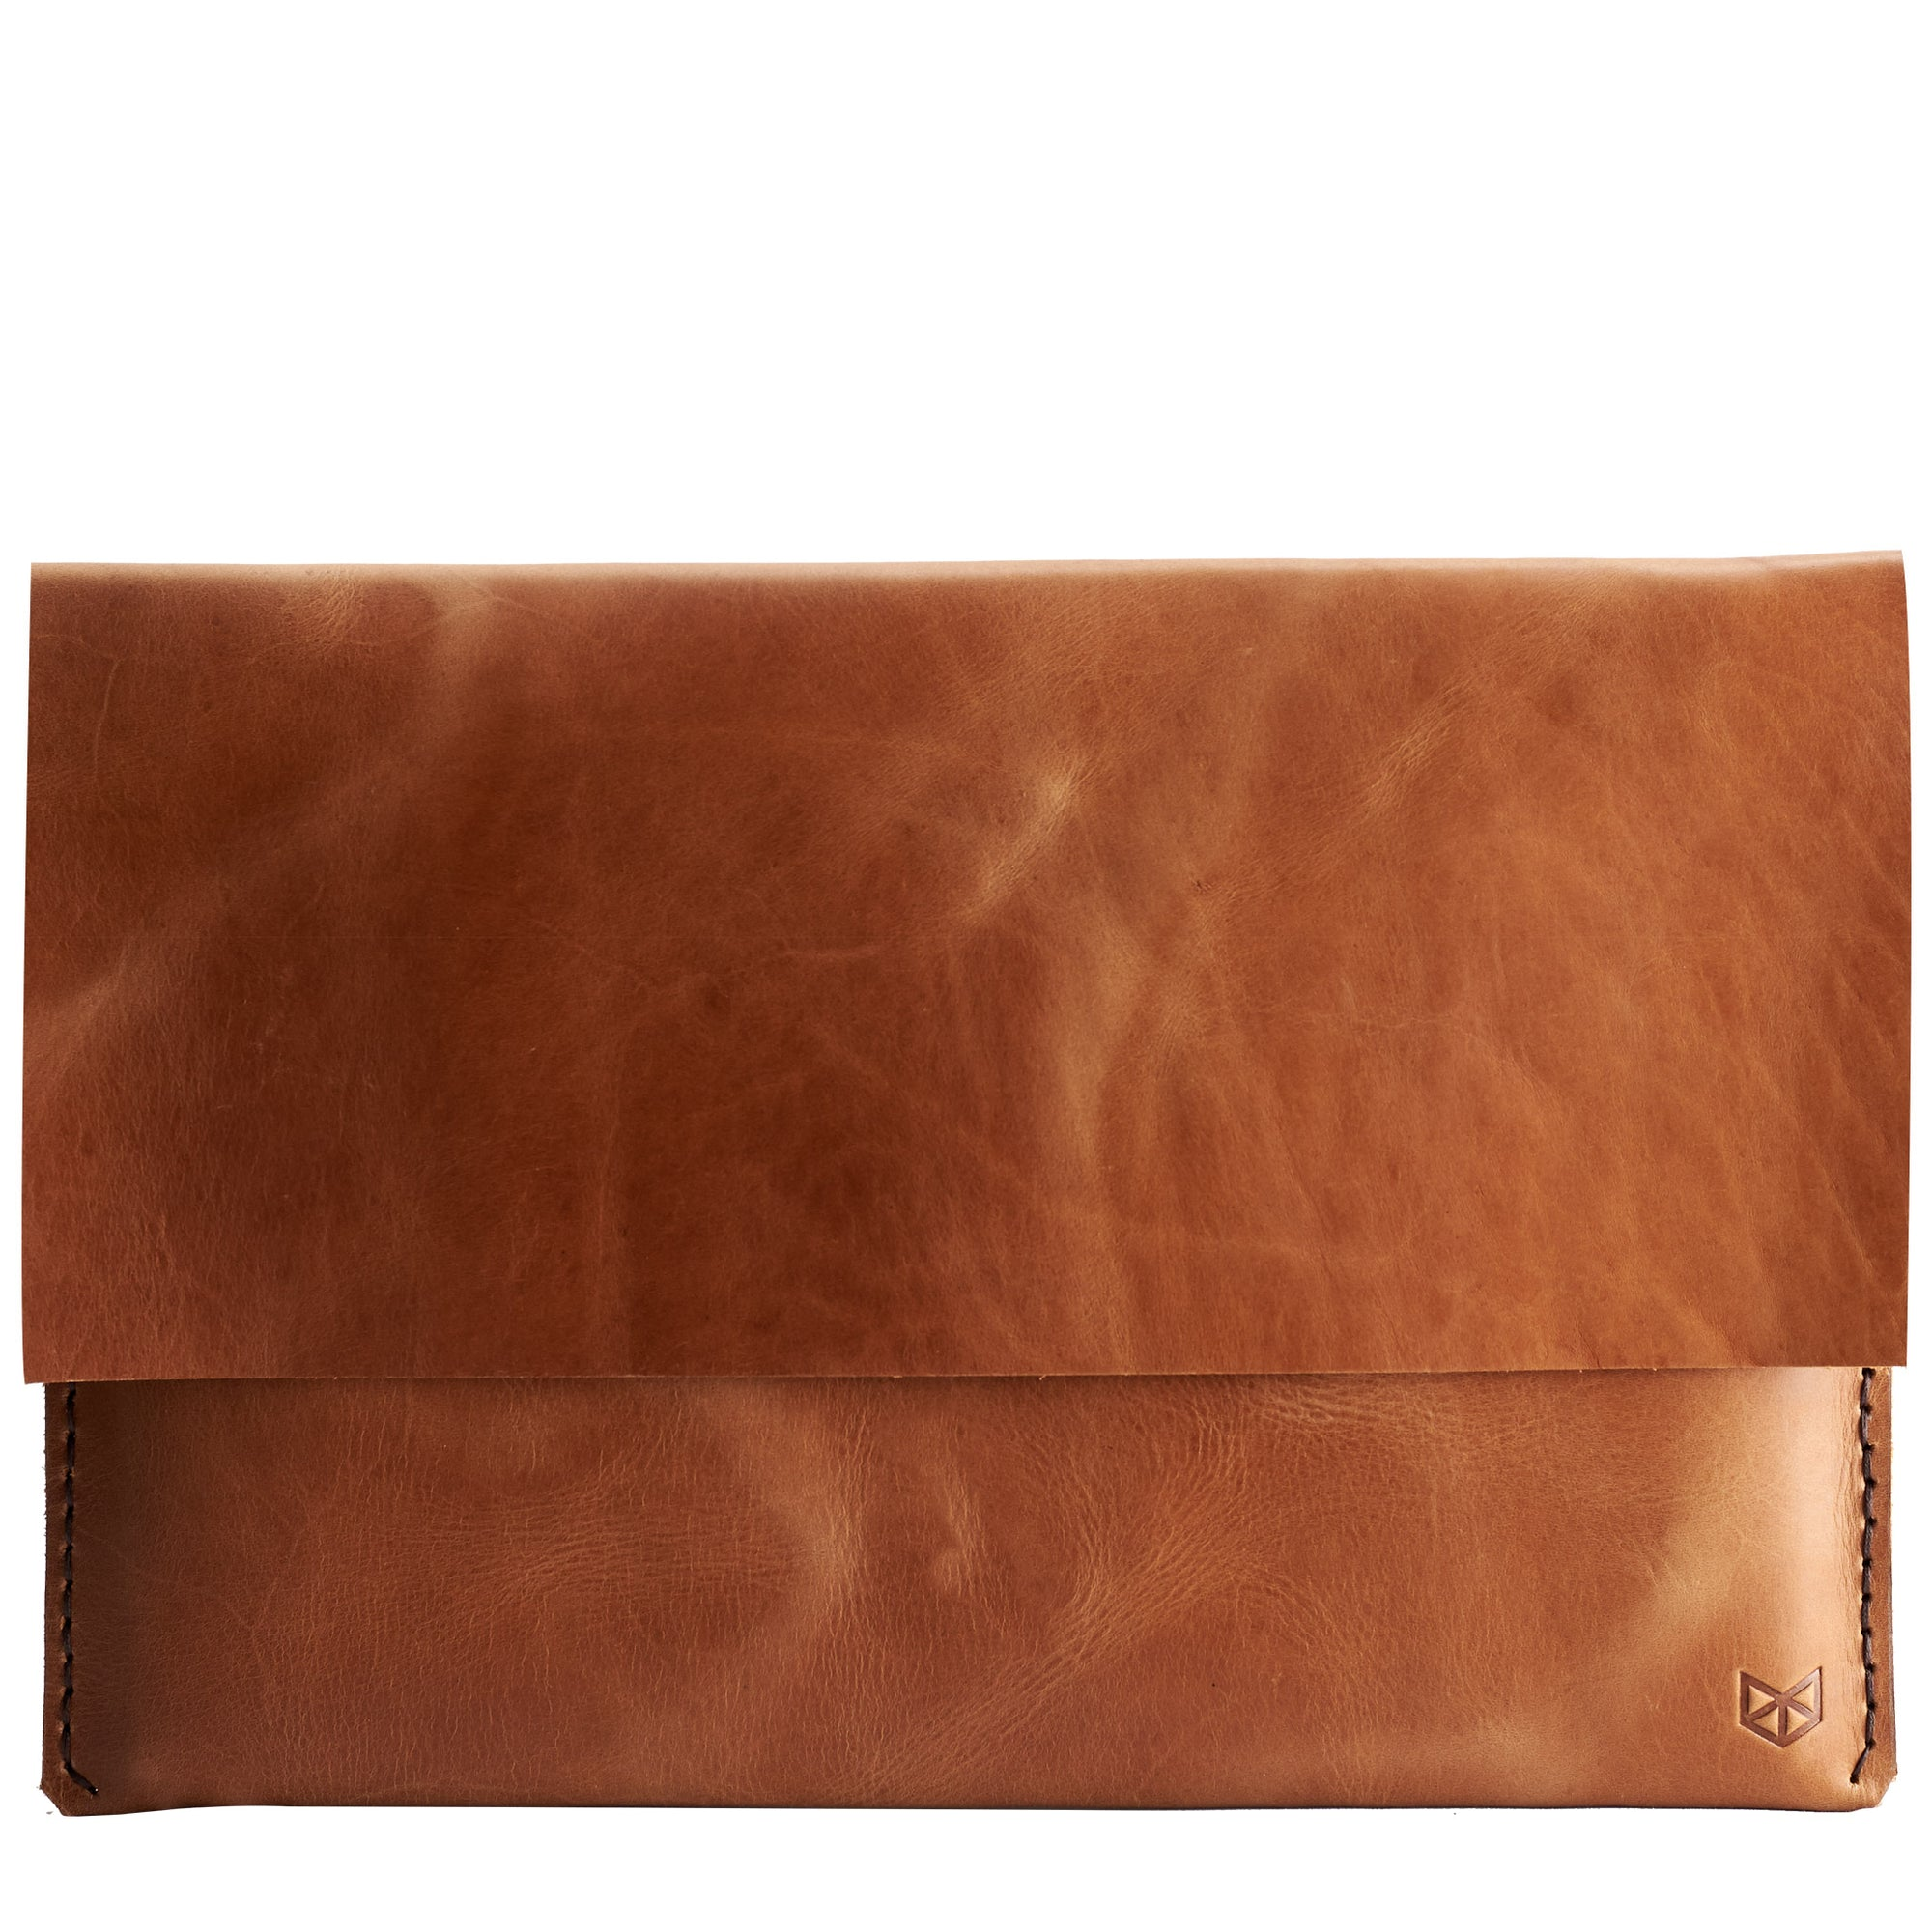 Havana leather Macbook pro touch bar sleeve. Designer unique mens cases. Hand stitched Macbook Pro sleeve